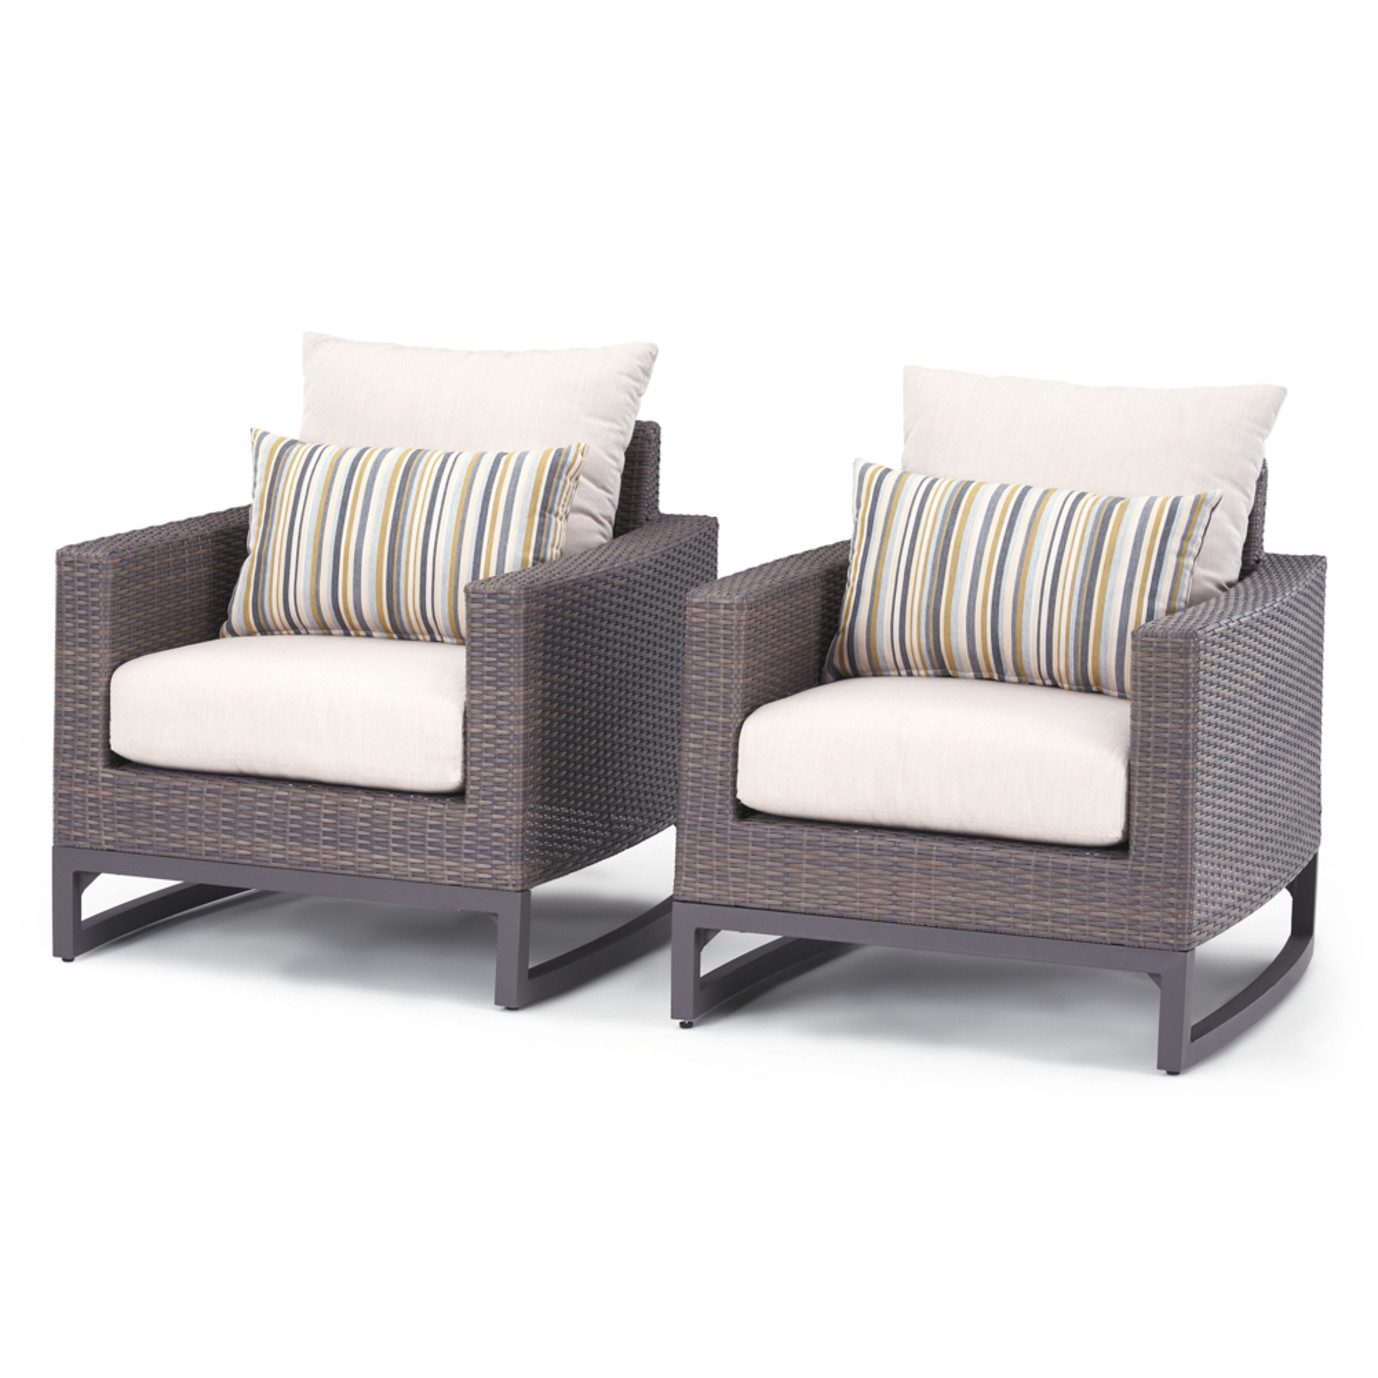 Milea 6 Piece Motion Seating Set - Natural Beige